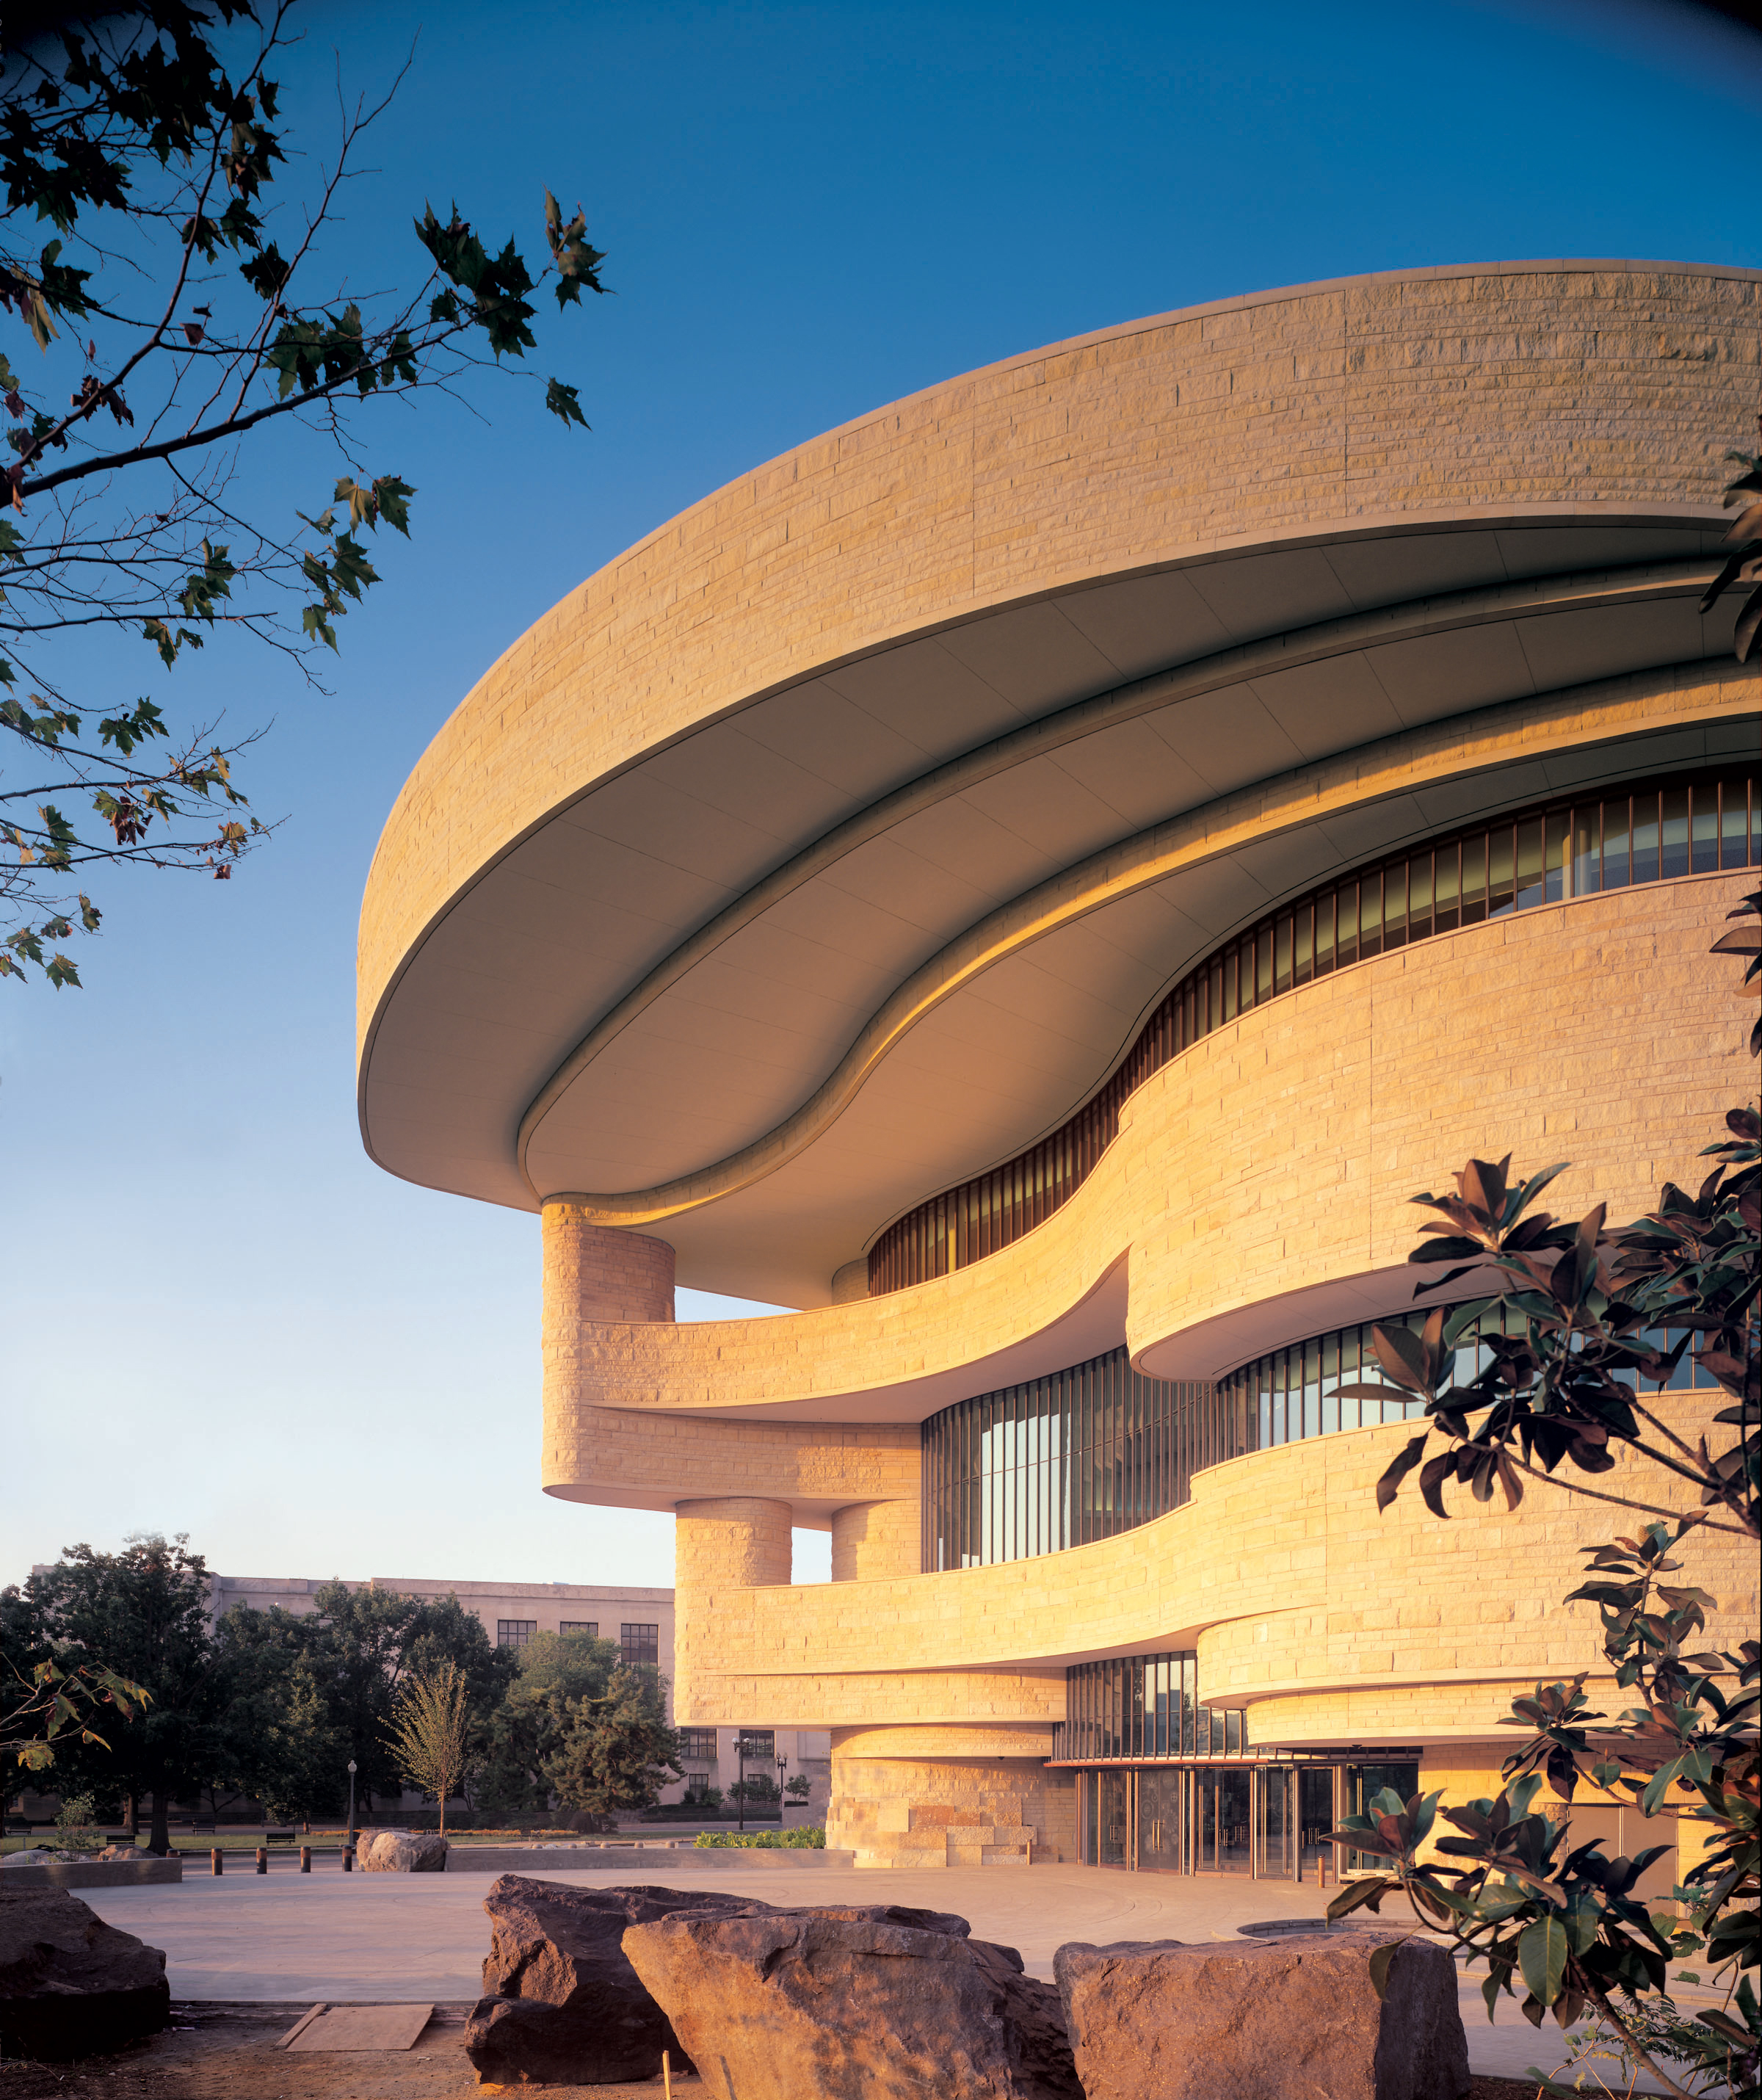 The east-facing main entrance of the National Museum of the American Indian at dawn. Judy Davis/Hoac